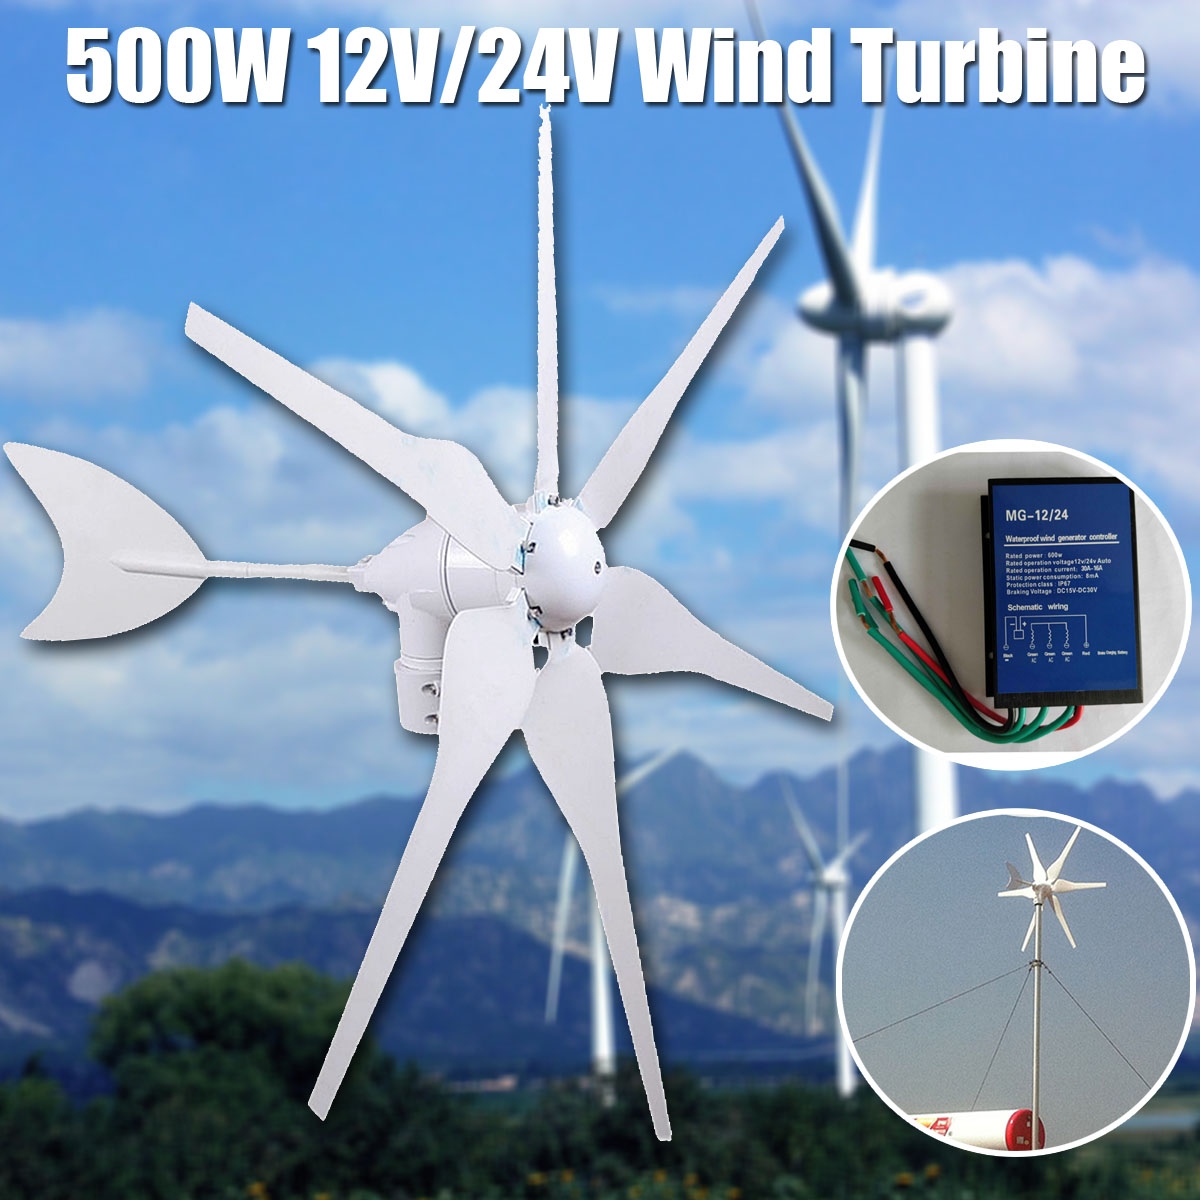 Wind Turbine Max 600w Dc 12v 24v Combine With English Diagram Also Power Generator Diagrams On 500w Environmental 6 Blades Miniature Mini Energy Residential